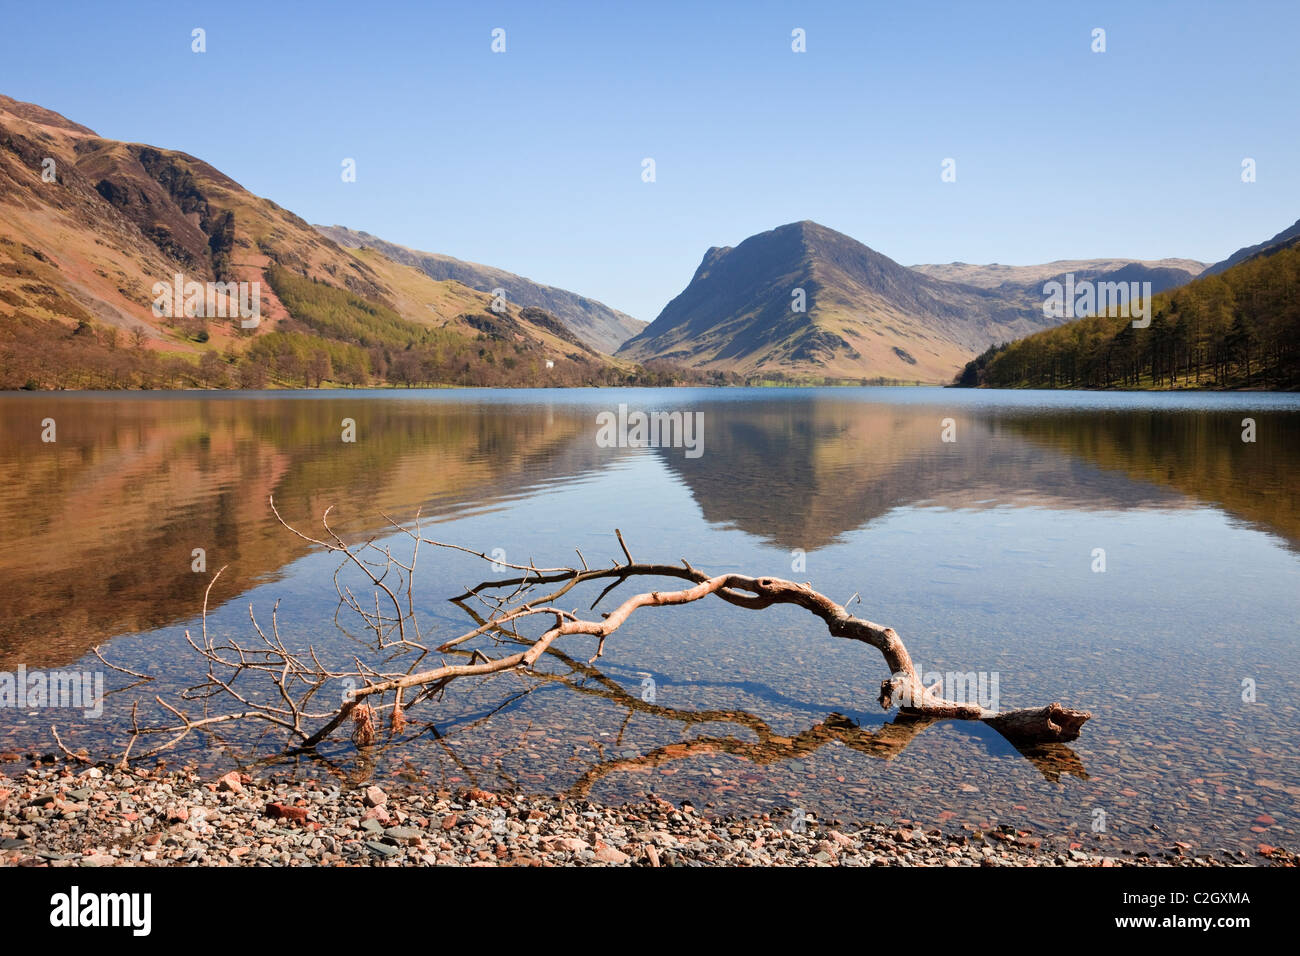 Scenic view to Fleetwith Pike mountain reflected in Buttermere Lake in the Lake District National Park, Buttermere, - Stock Image